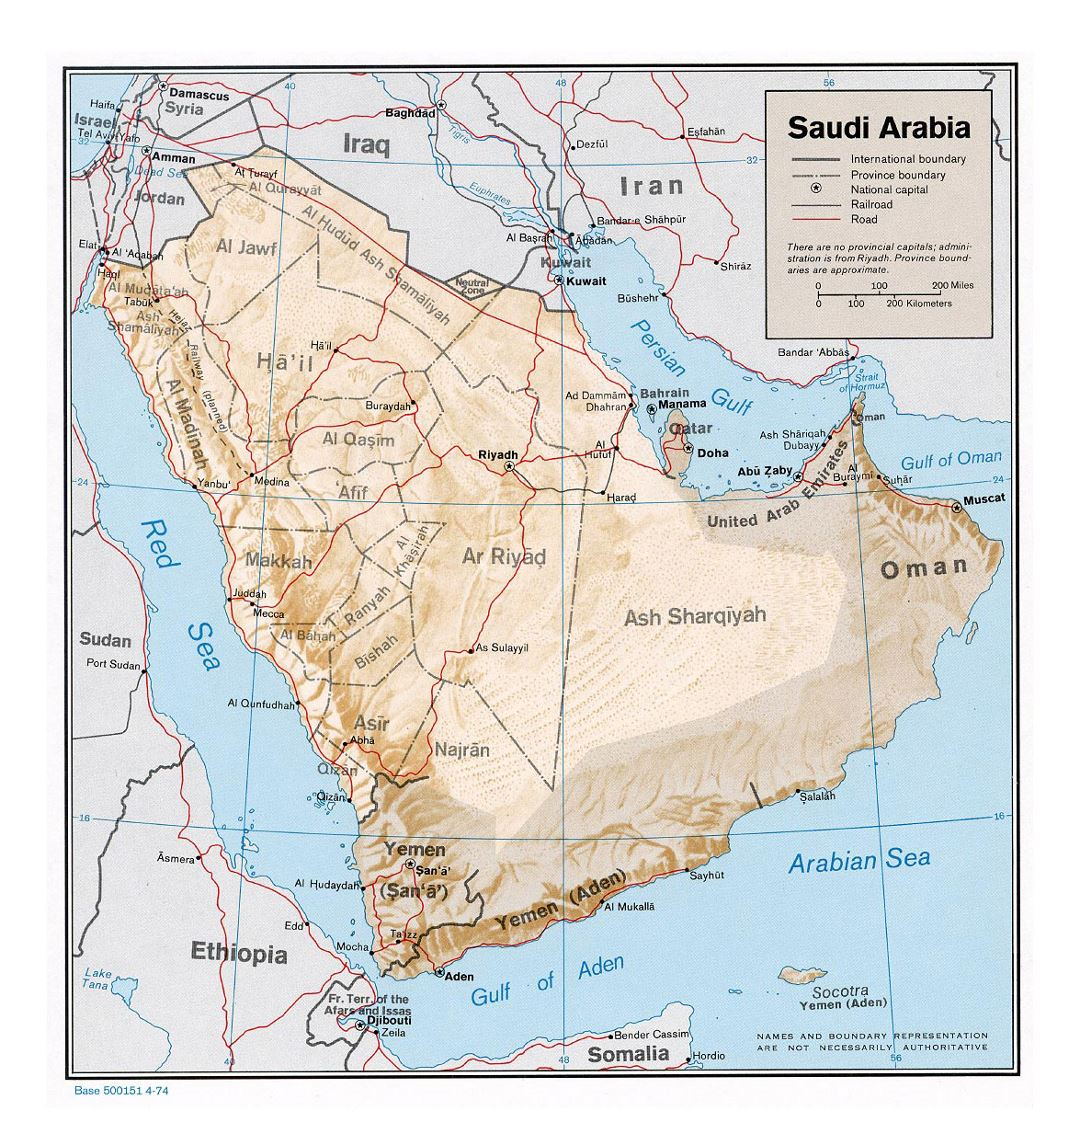 Detailed political and administrative map of Saudi Arabia with relief, roads, railroads and cities - 1974